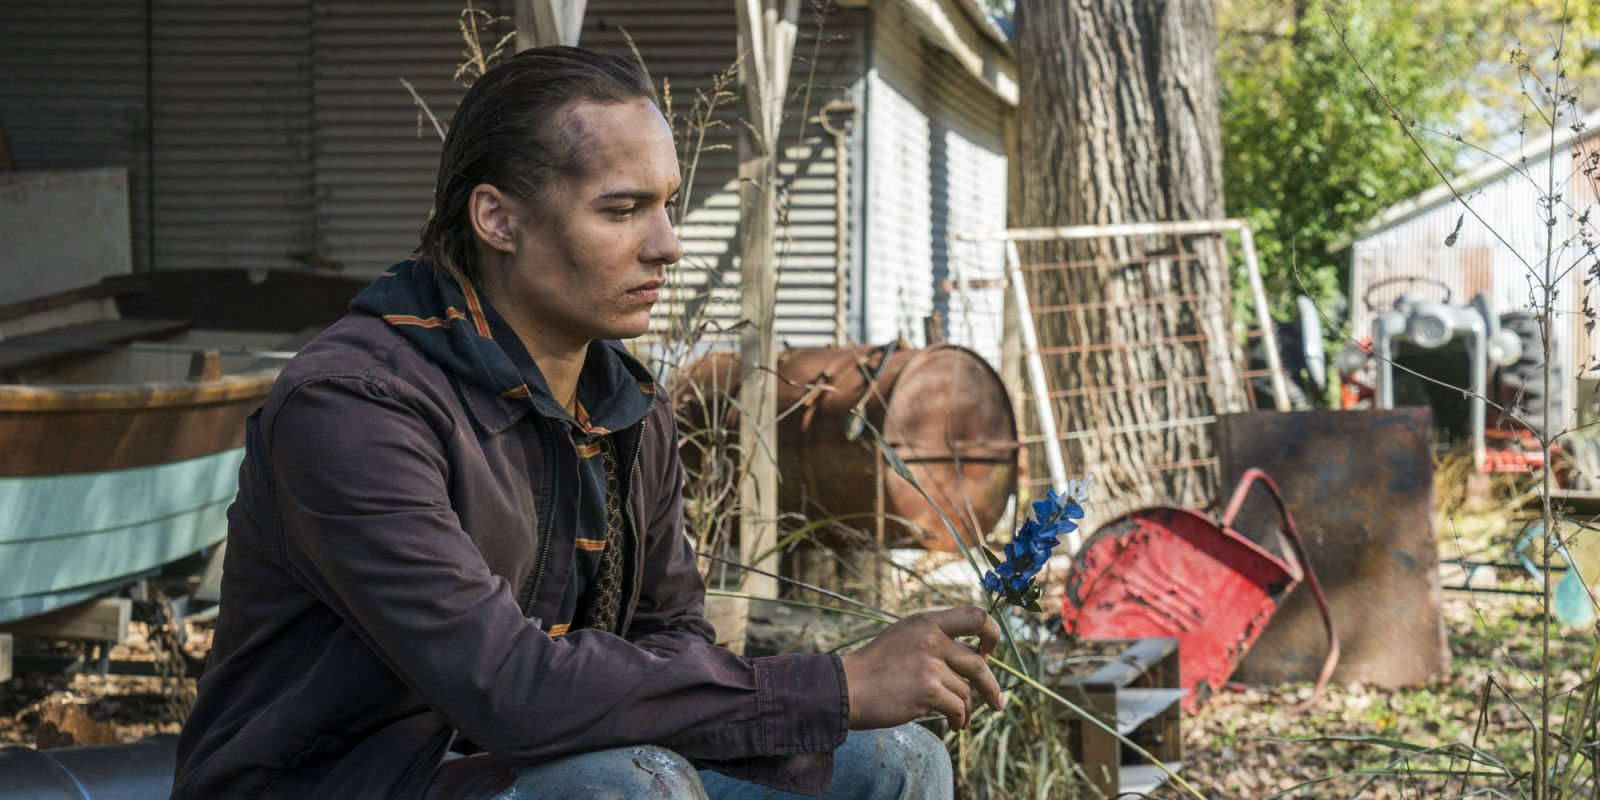 Fear the Walking Dead season 4 spoilers, cast, episodes and everything you need to know